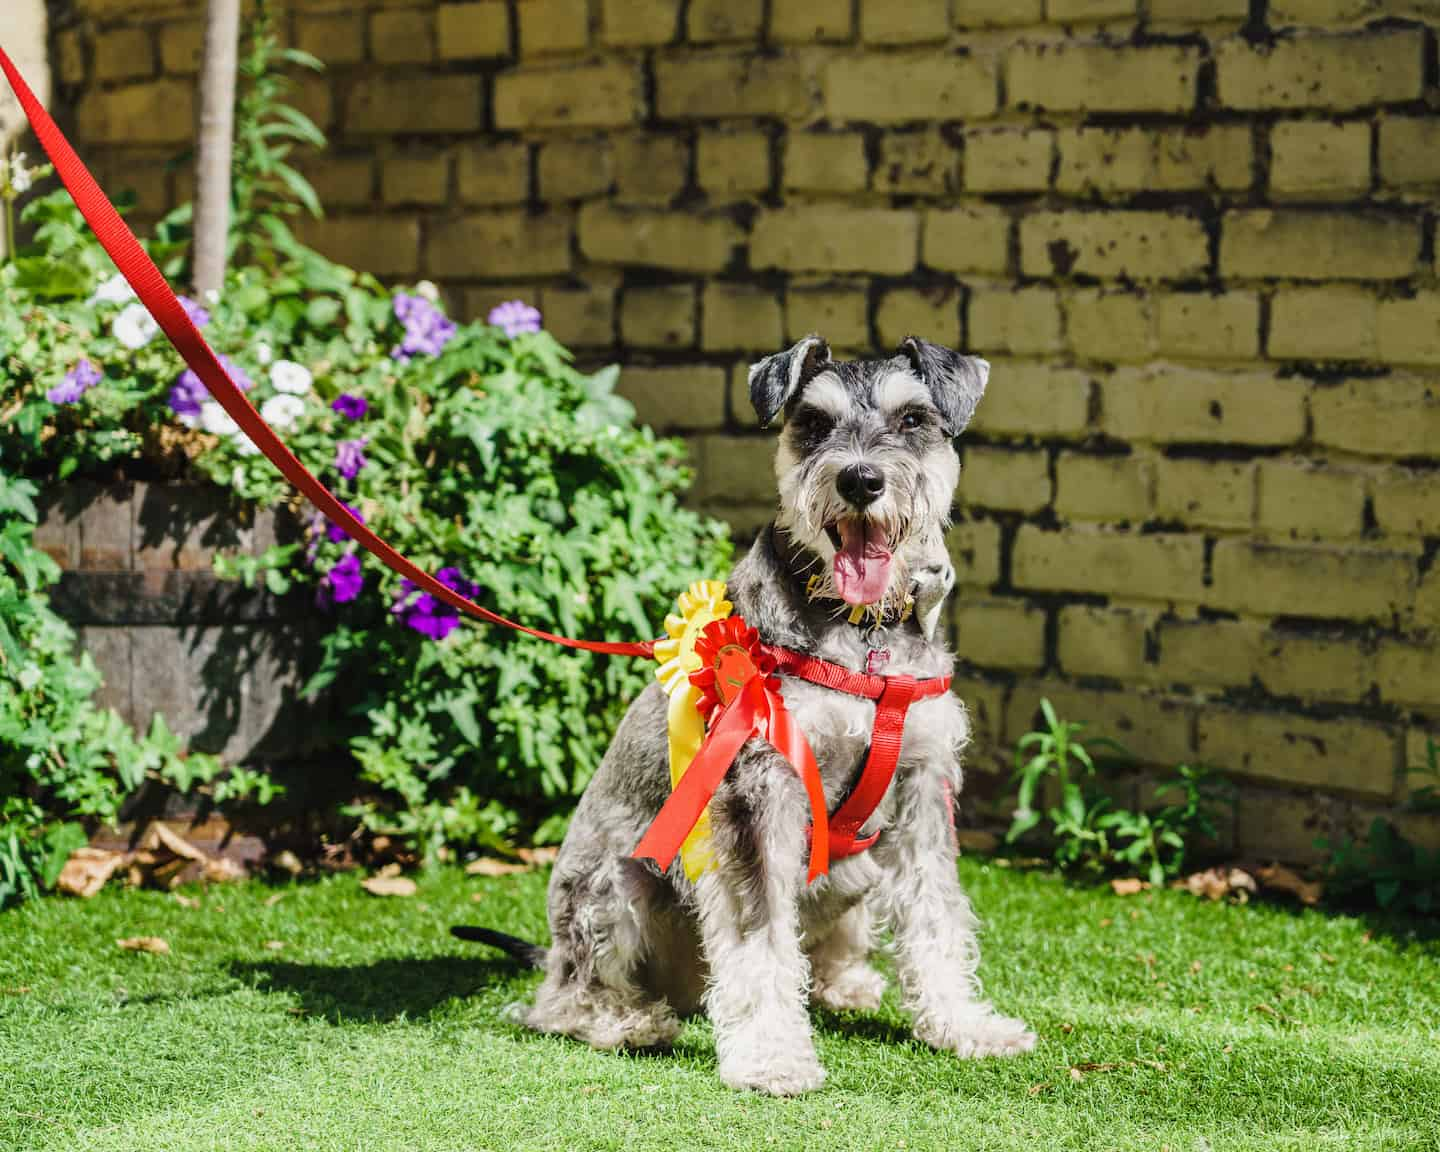 My Dog Friendly London By Rusty Red The Schnauzer Dog Friendly Shoreditch and Hoxton Charity Dog Show